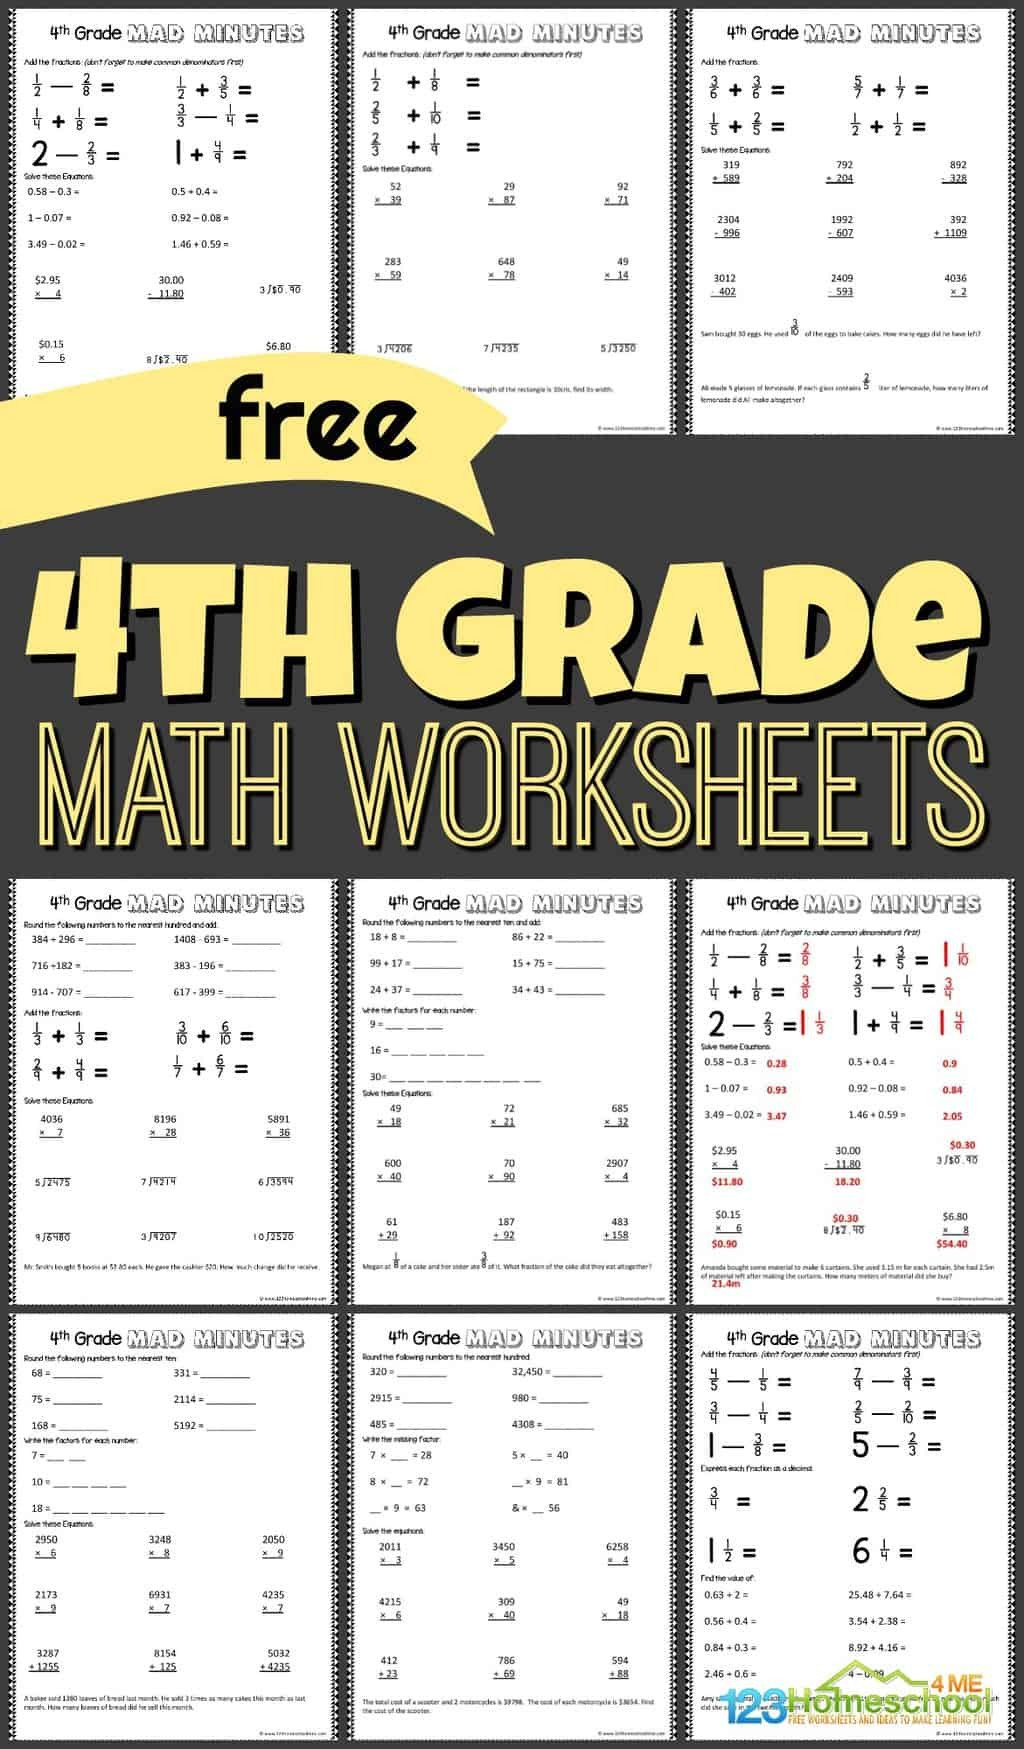 Abeka 5th Grade Math Worksheets Free 4th Grade Math Worksheets Fourth Printable Abeka